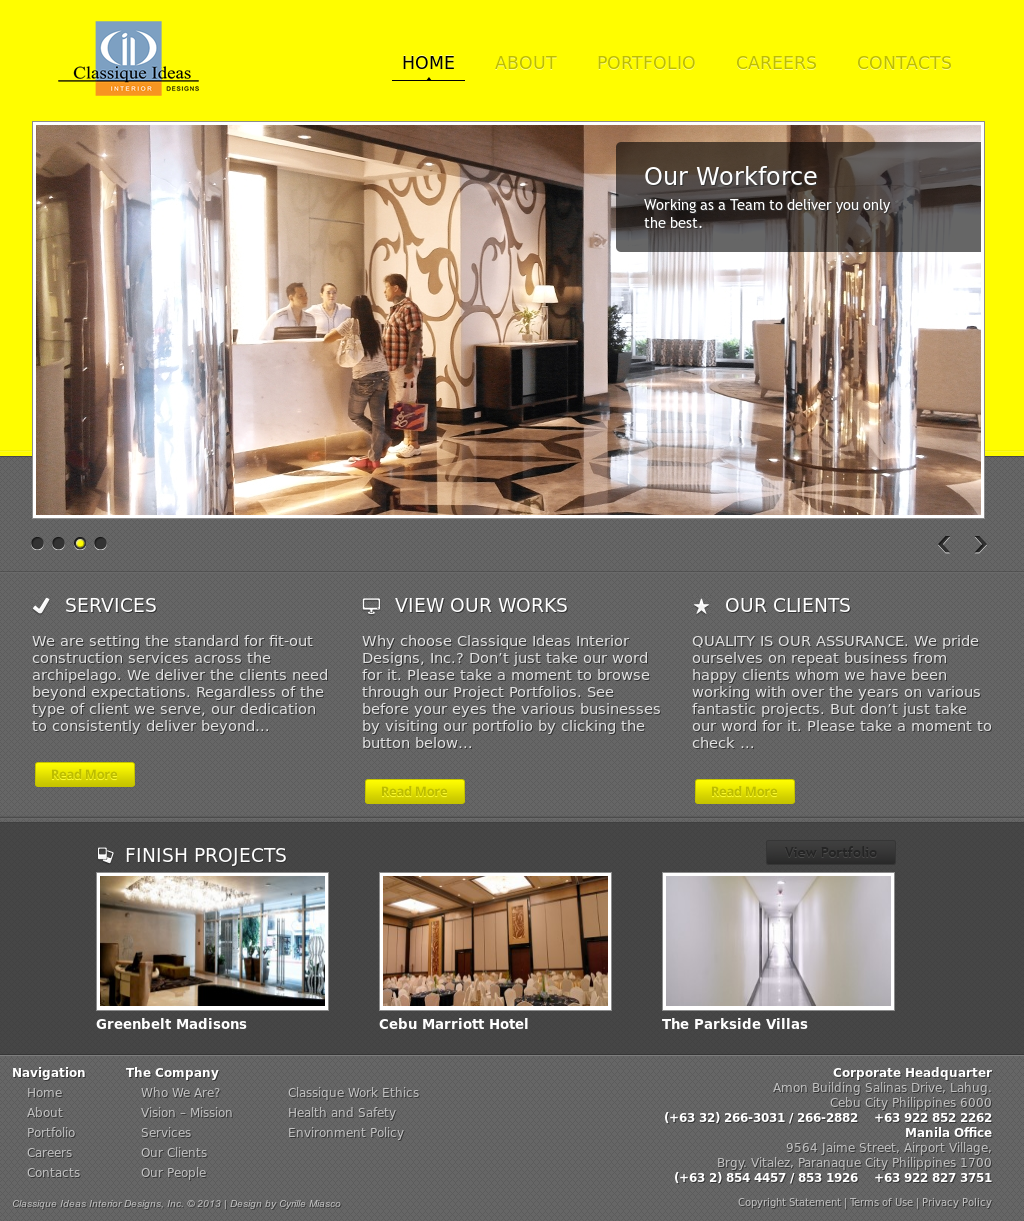 Classique Ideas Interior Designs Competitors Revenue And Employees Owler Company Profile